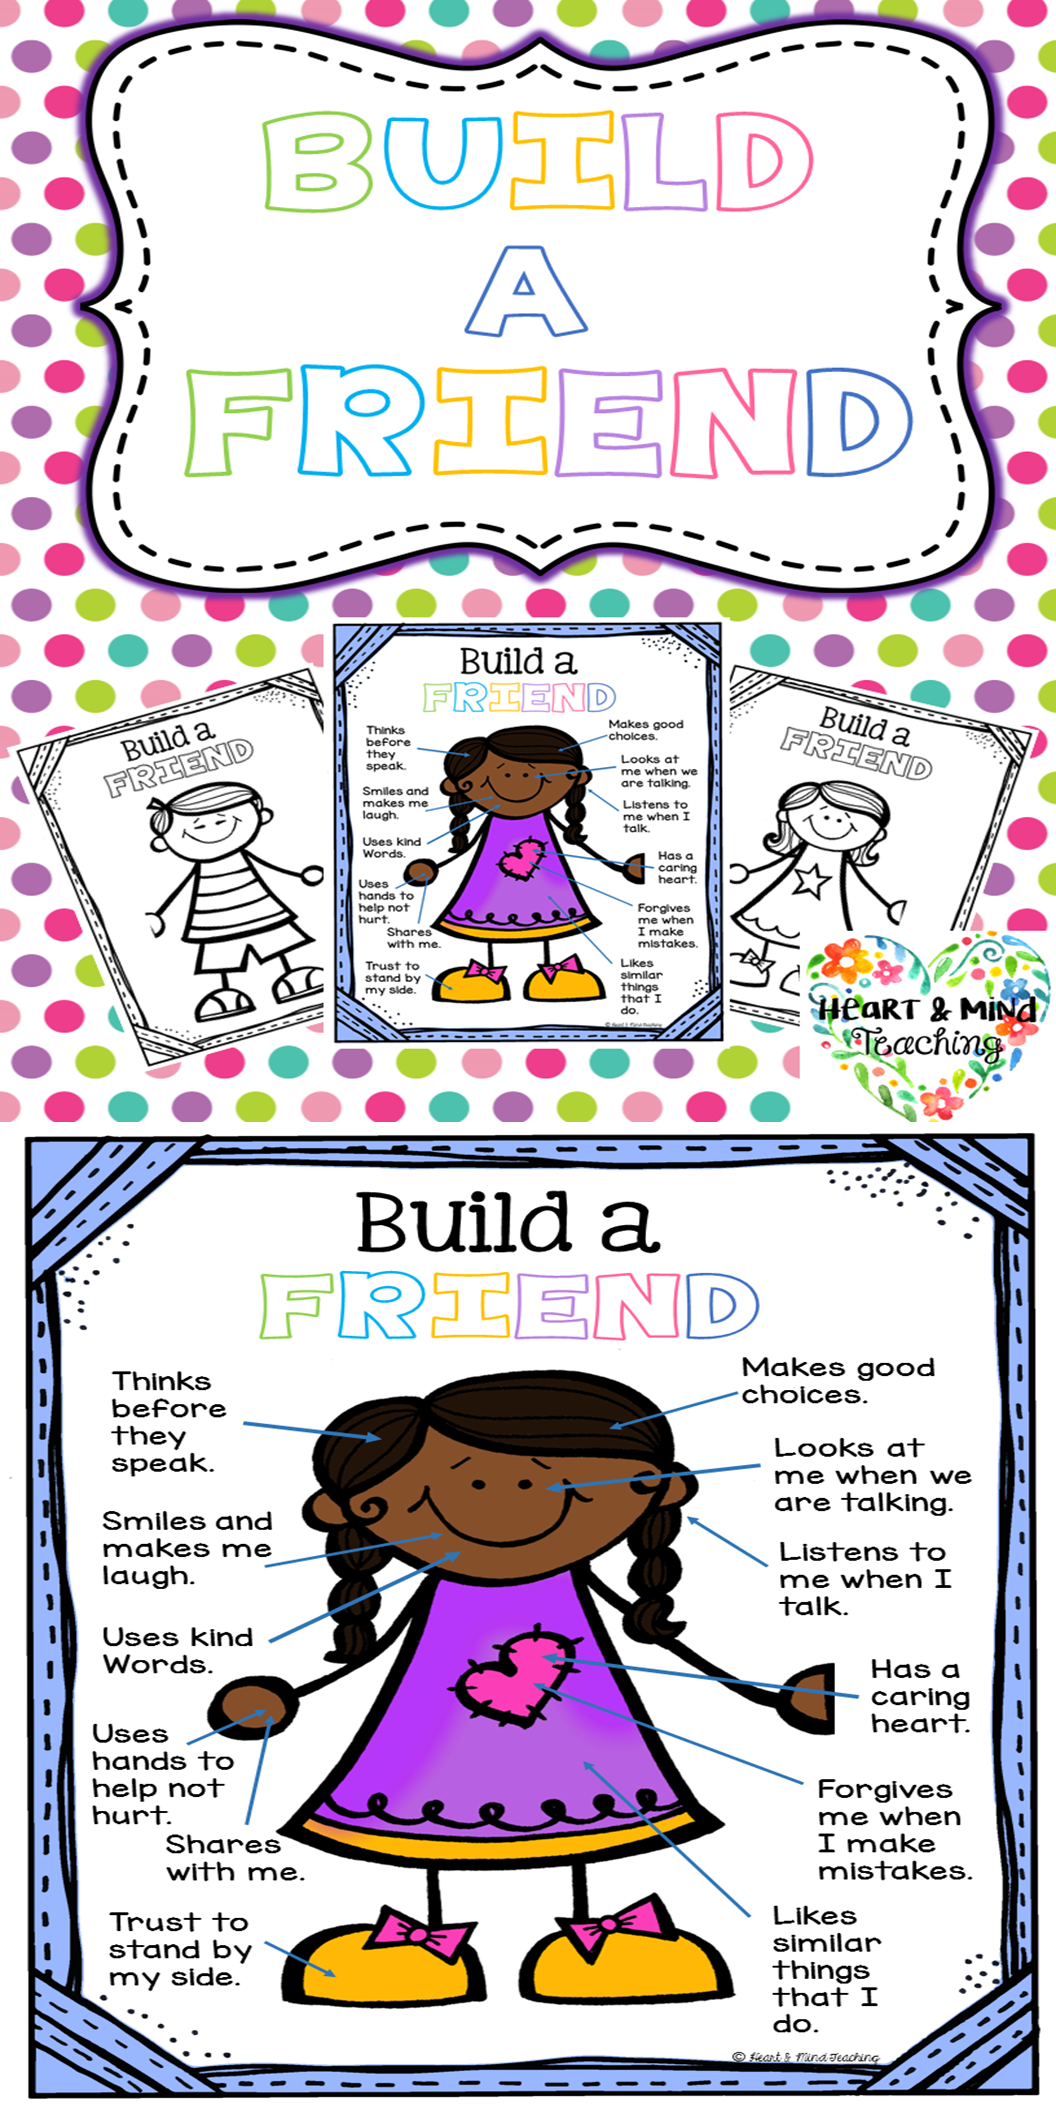 Build A Friend Activity Students Will Build A Friend That They Would Like To Have Friend Activities Character Education Lessons Making Friends Social Skills [ 2112 x 1056 Pixel ]